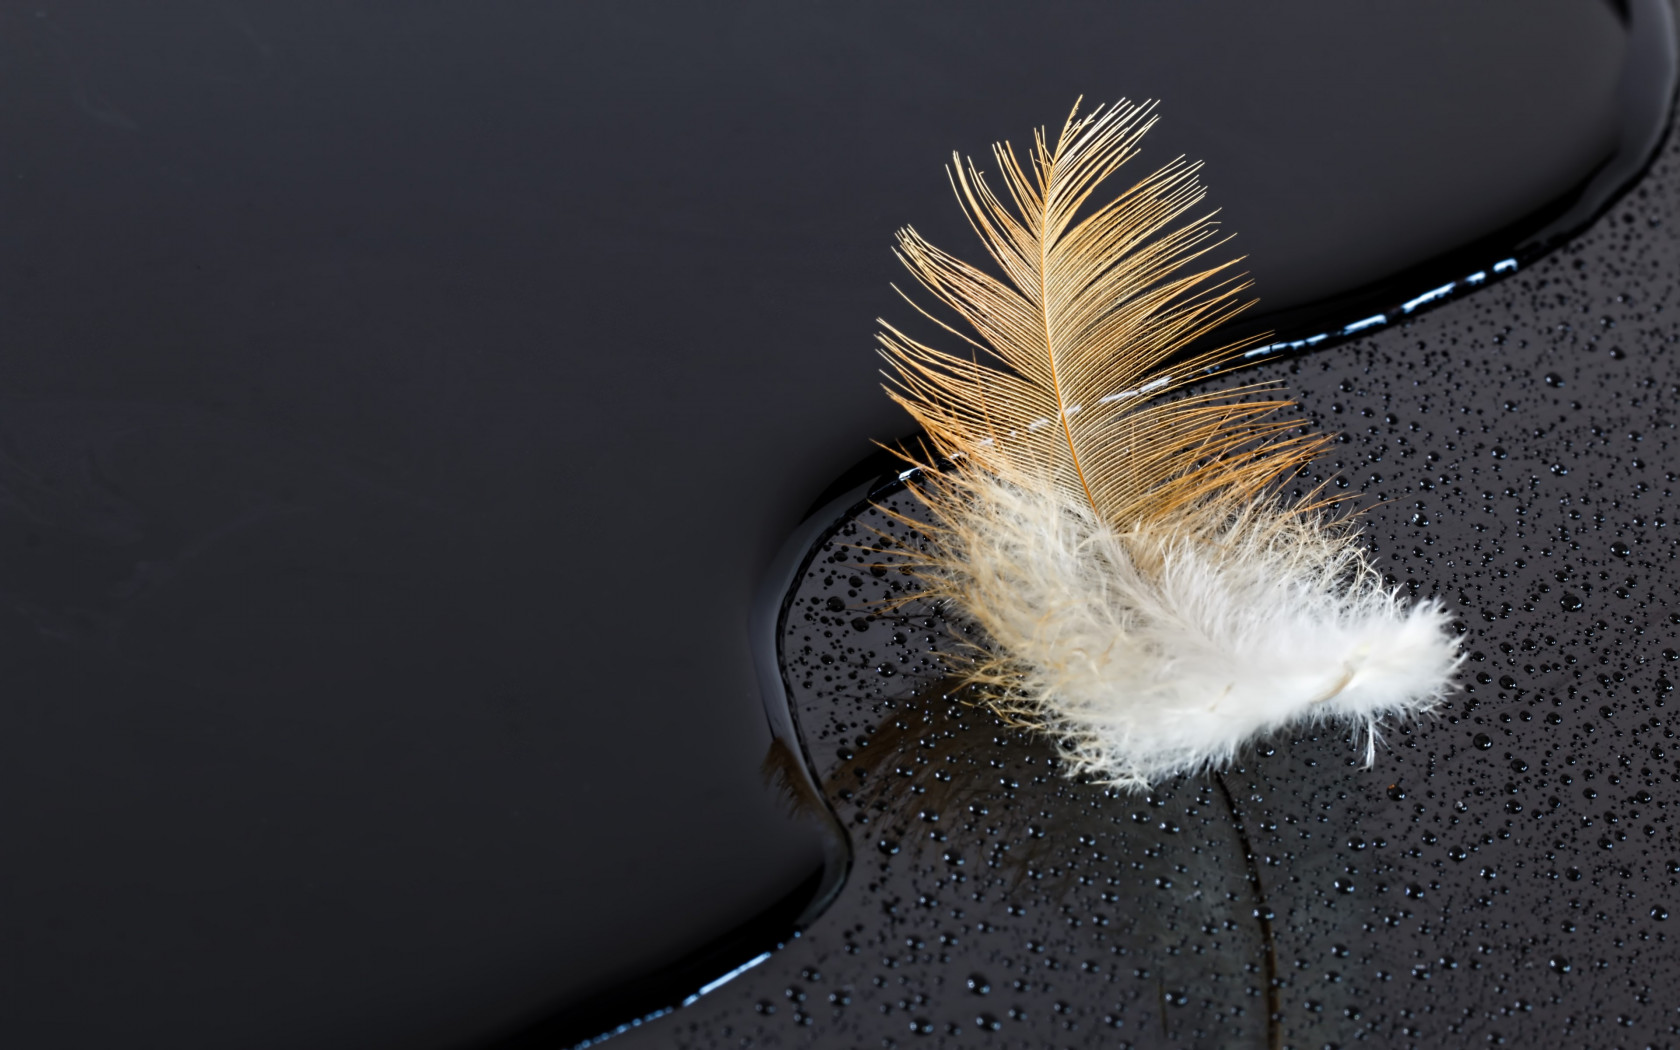 Dark surface with a feather on water wallpaper 1680x1050